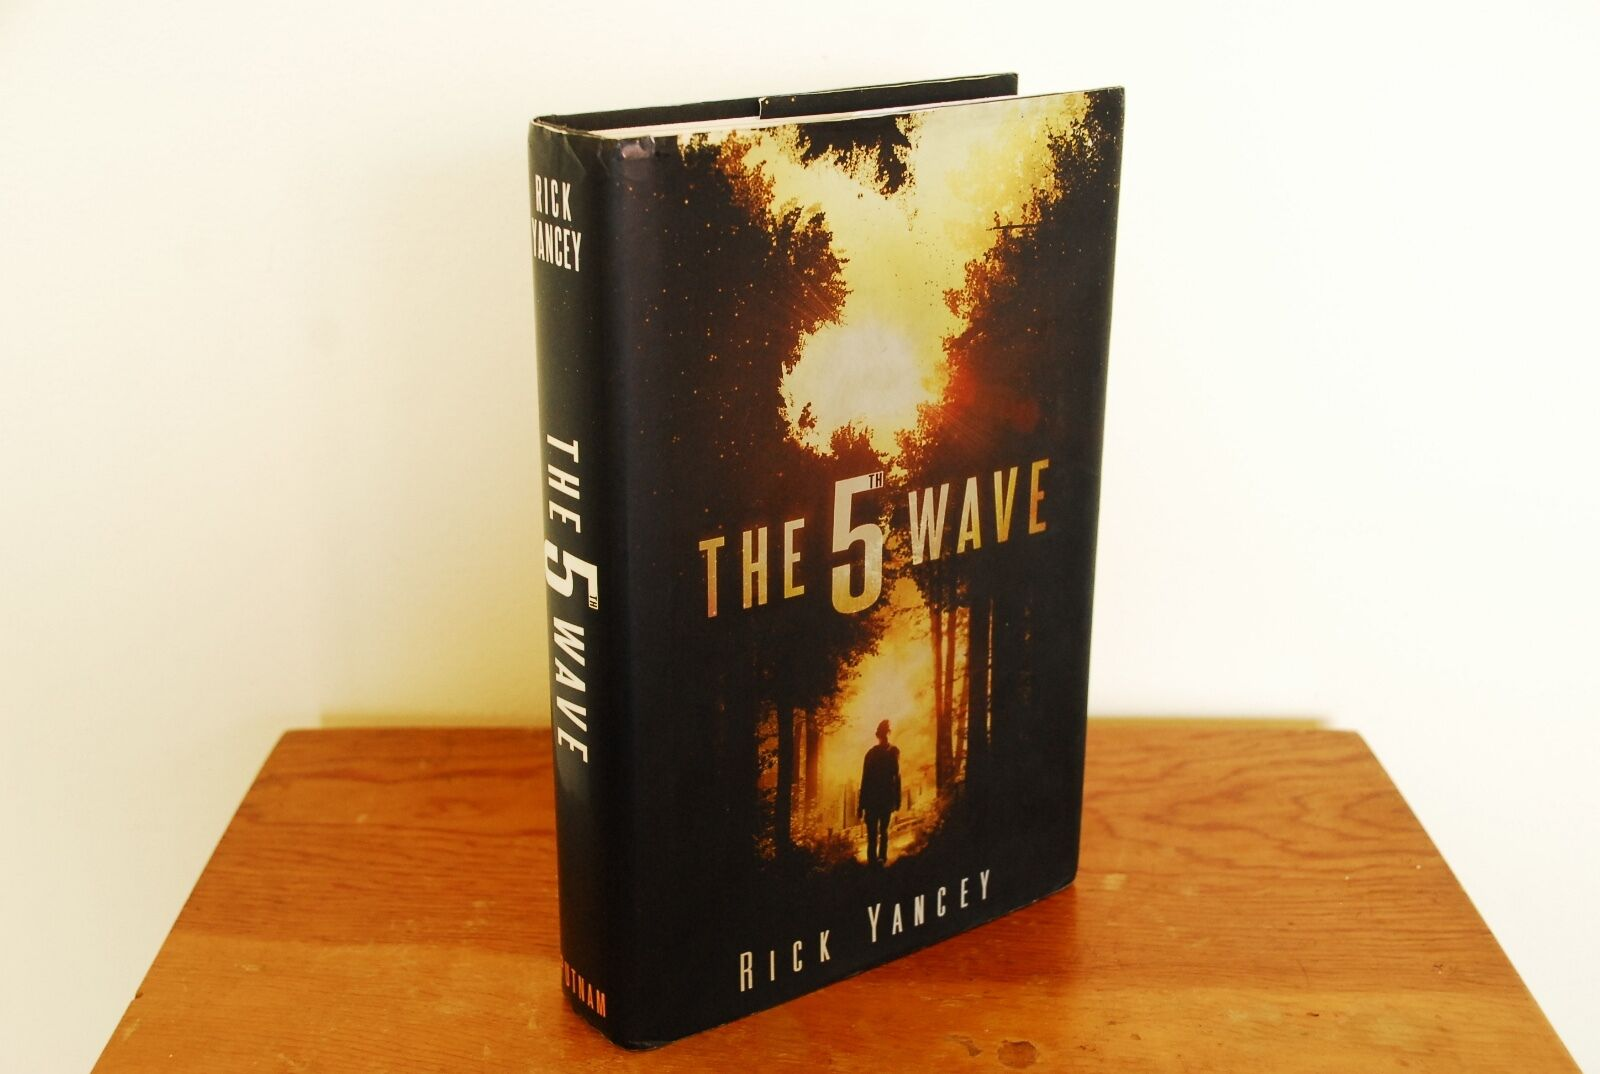 a summary and review of the 5th wave a novel by rick yancey Report abuse transcript of the 5th wave by- rick yancey cassie sullivan authors purpose -i believe the authors purpose of the 5th wave is to get close to someone before you trust them recommendation for novel i really recommend this book because i like sci-fi and romance books.